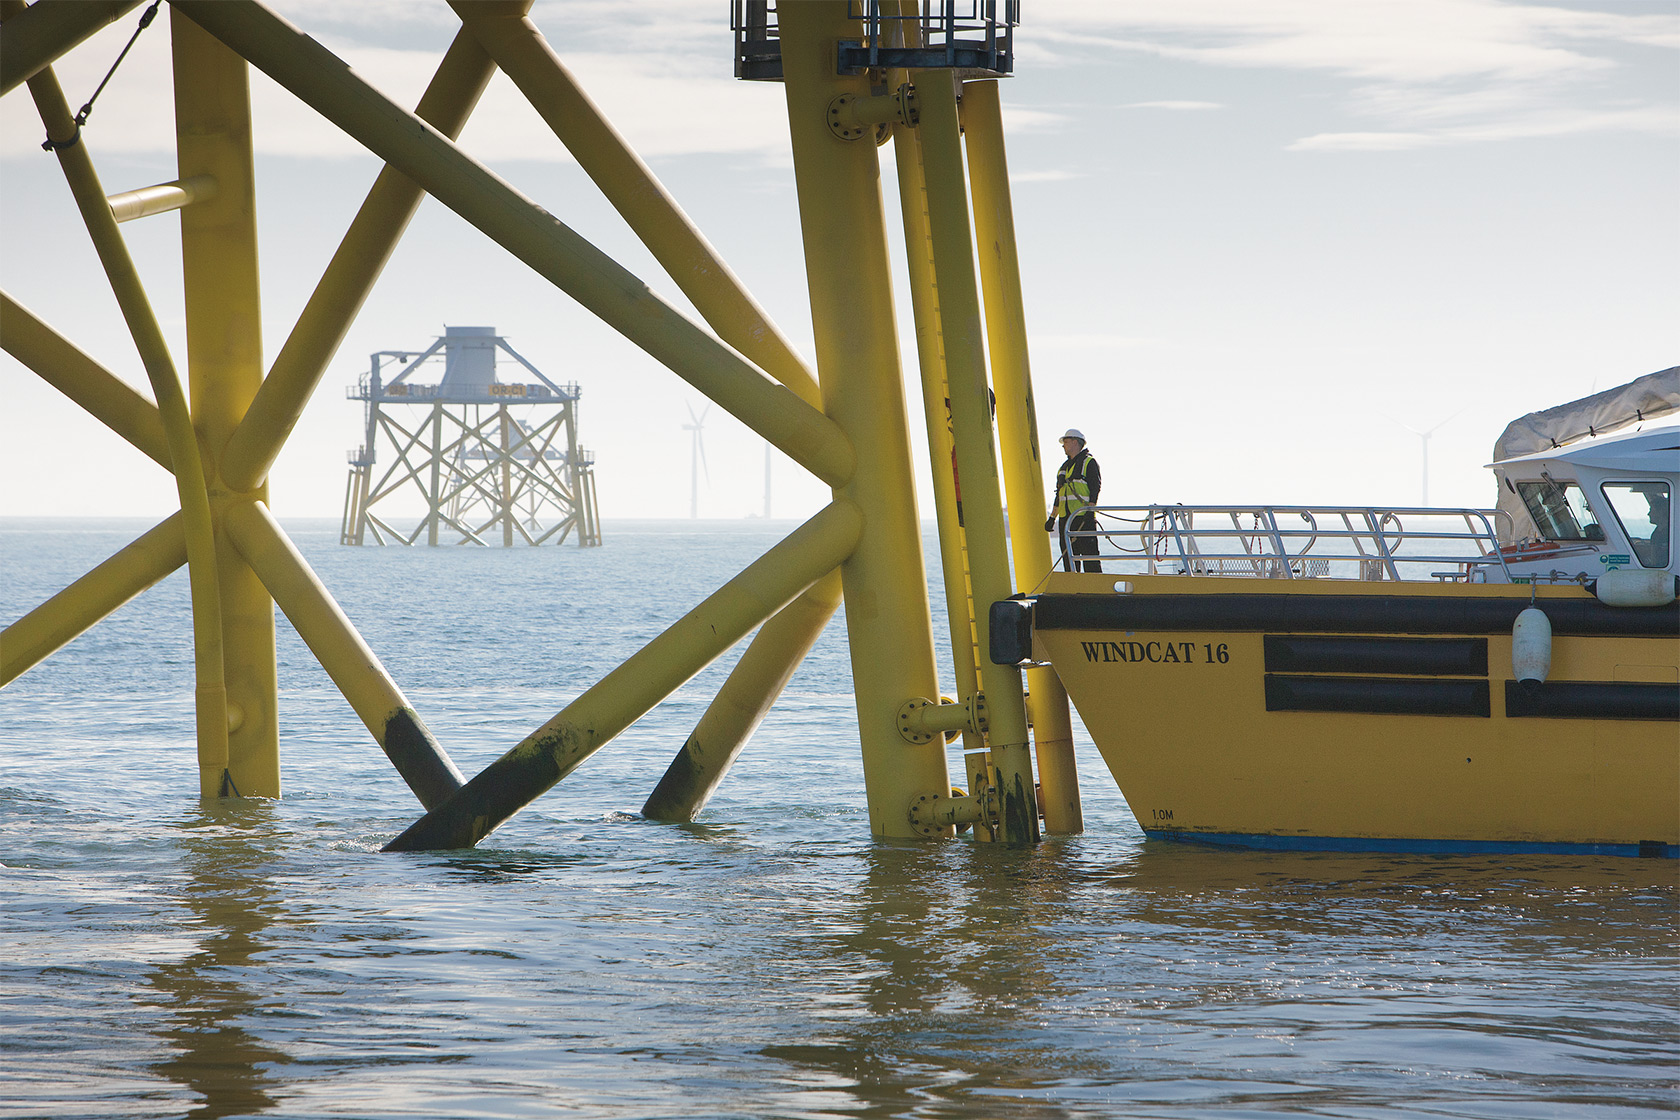 Man on a ship inspecting foundations at Ormonde offshore wind farm